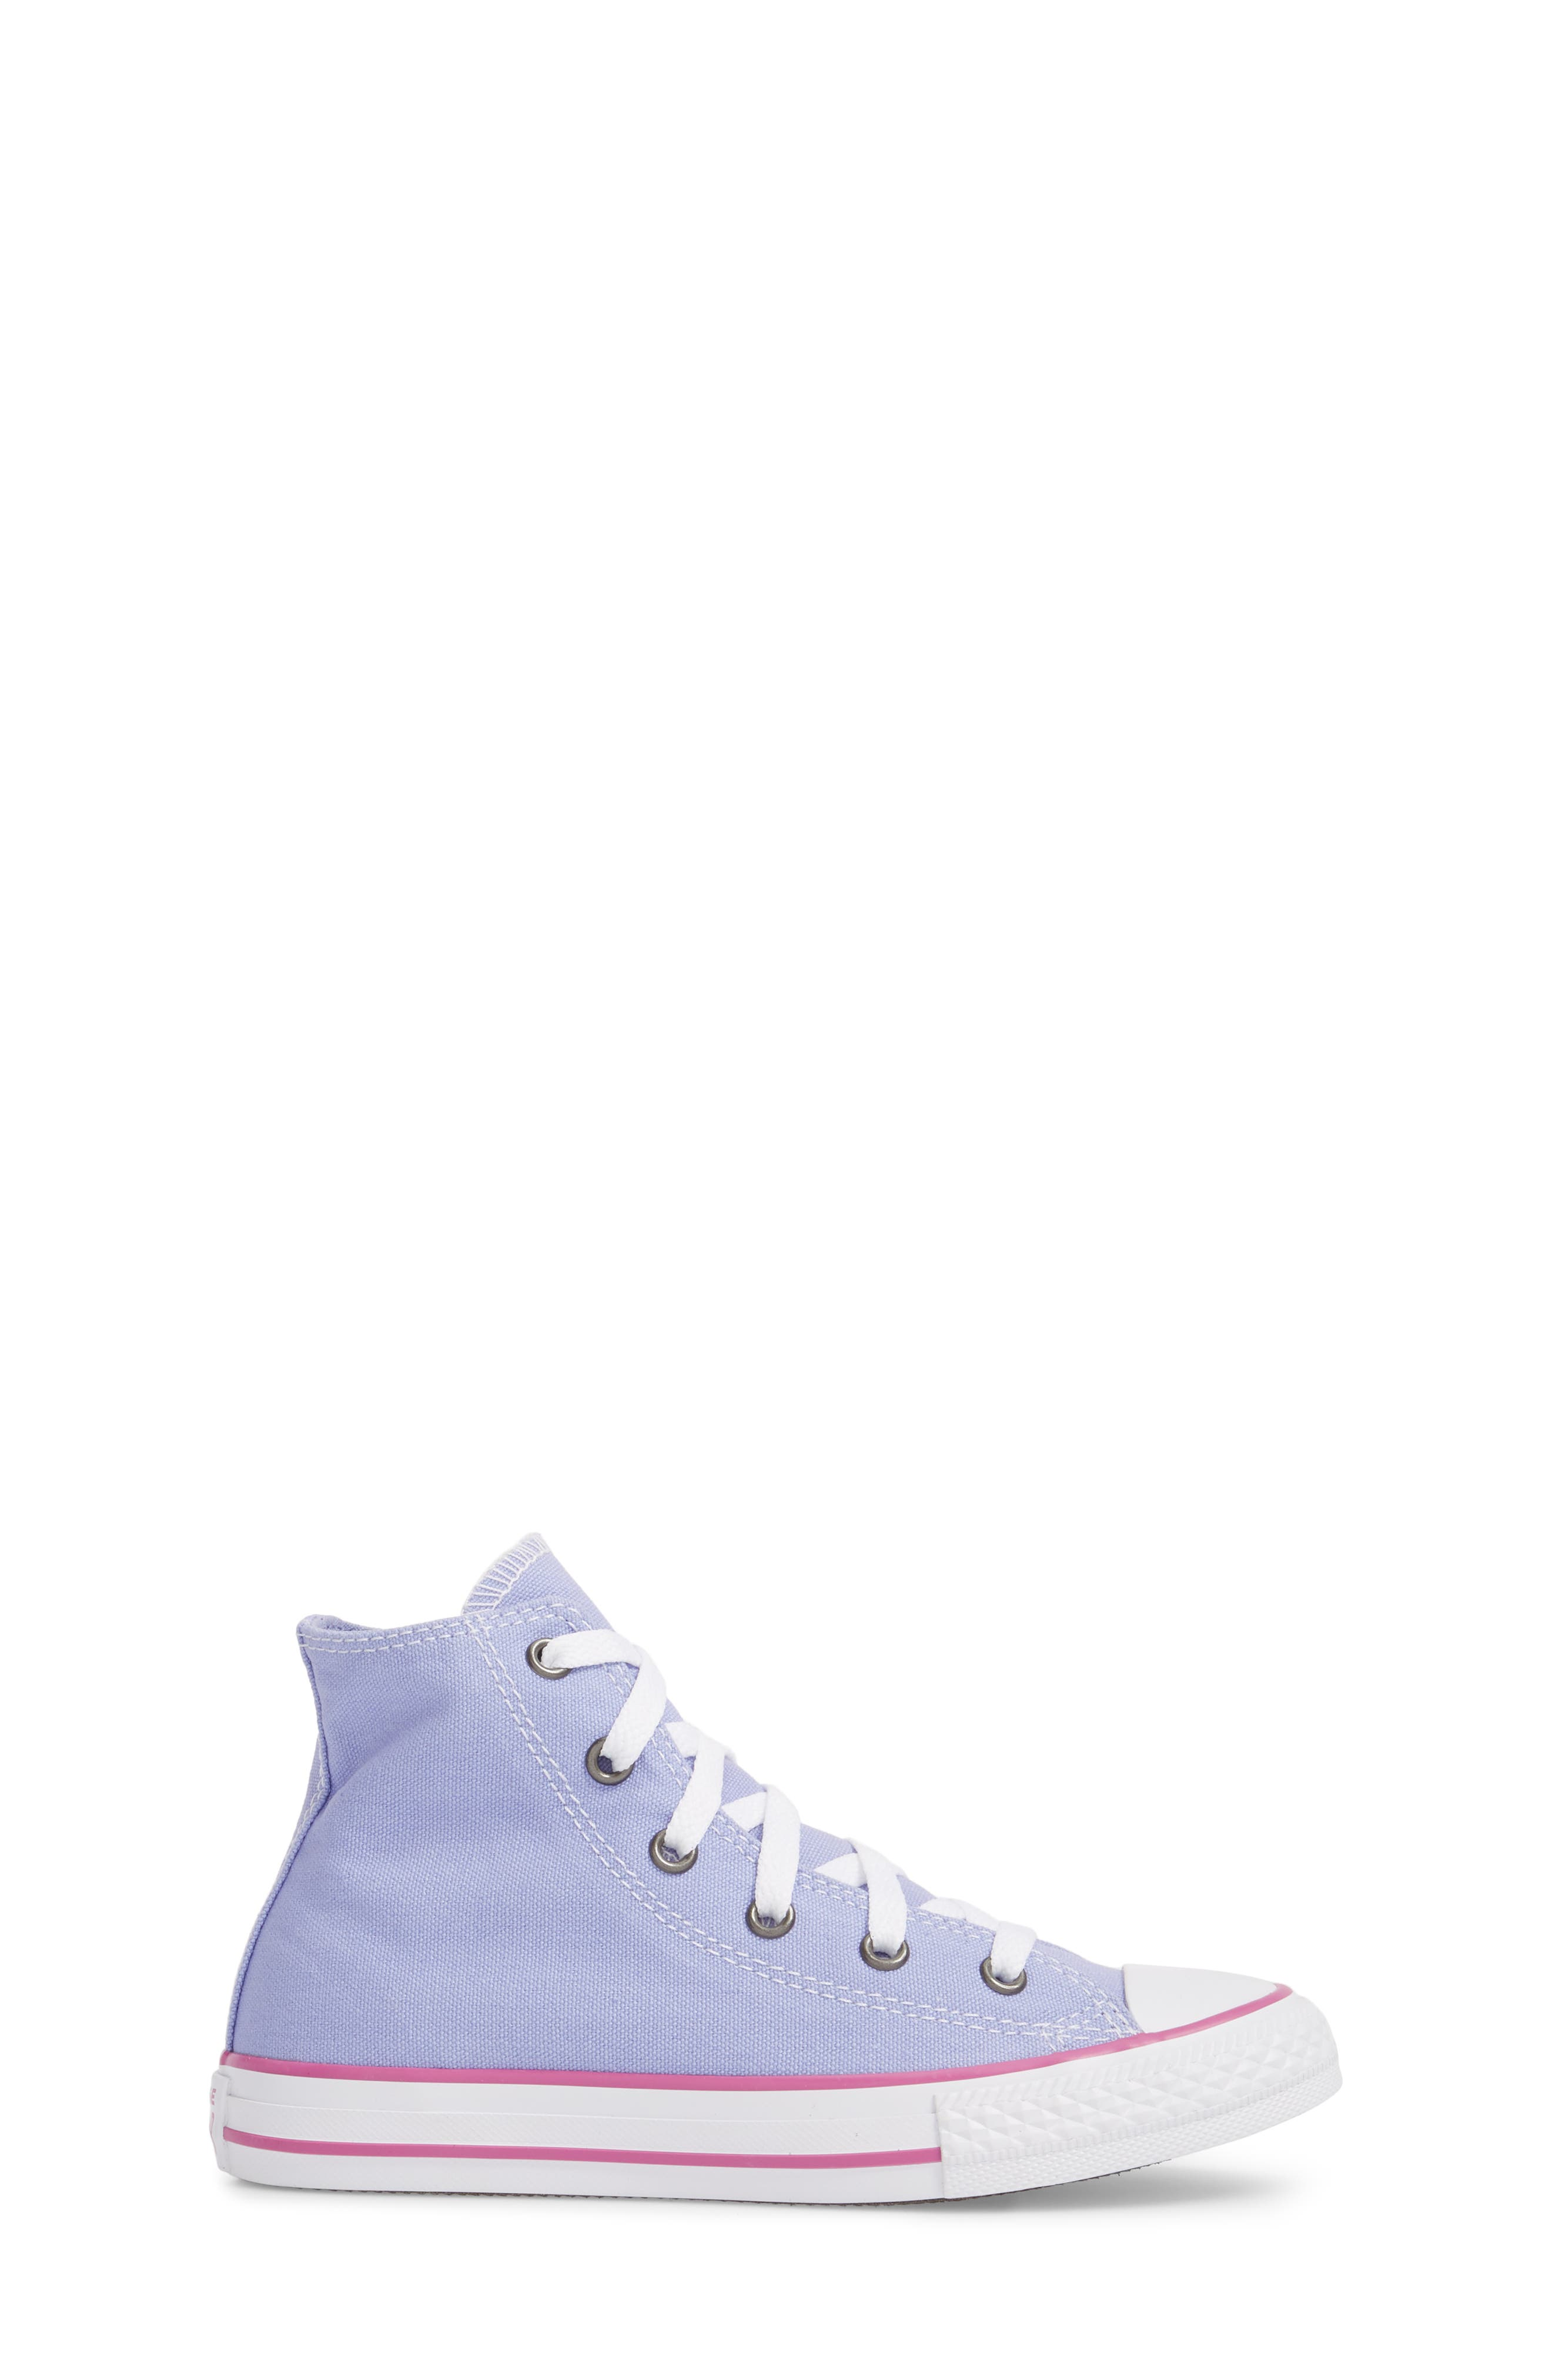 Chuck Taylor<sup>®</sup> All Star<sup>®</sup> High Top Sneaker,                             Alternate thumbnail 8, color,